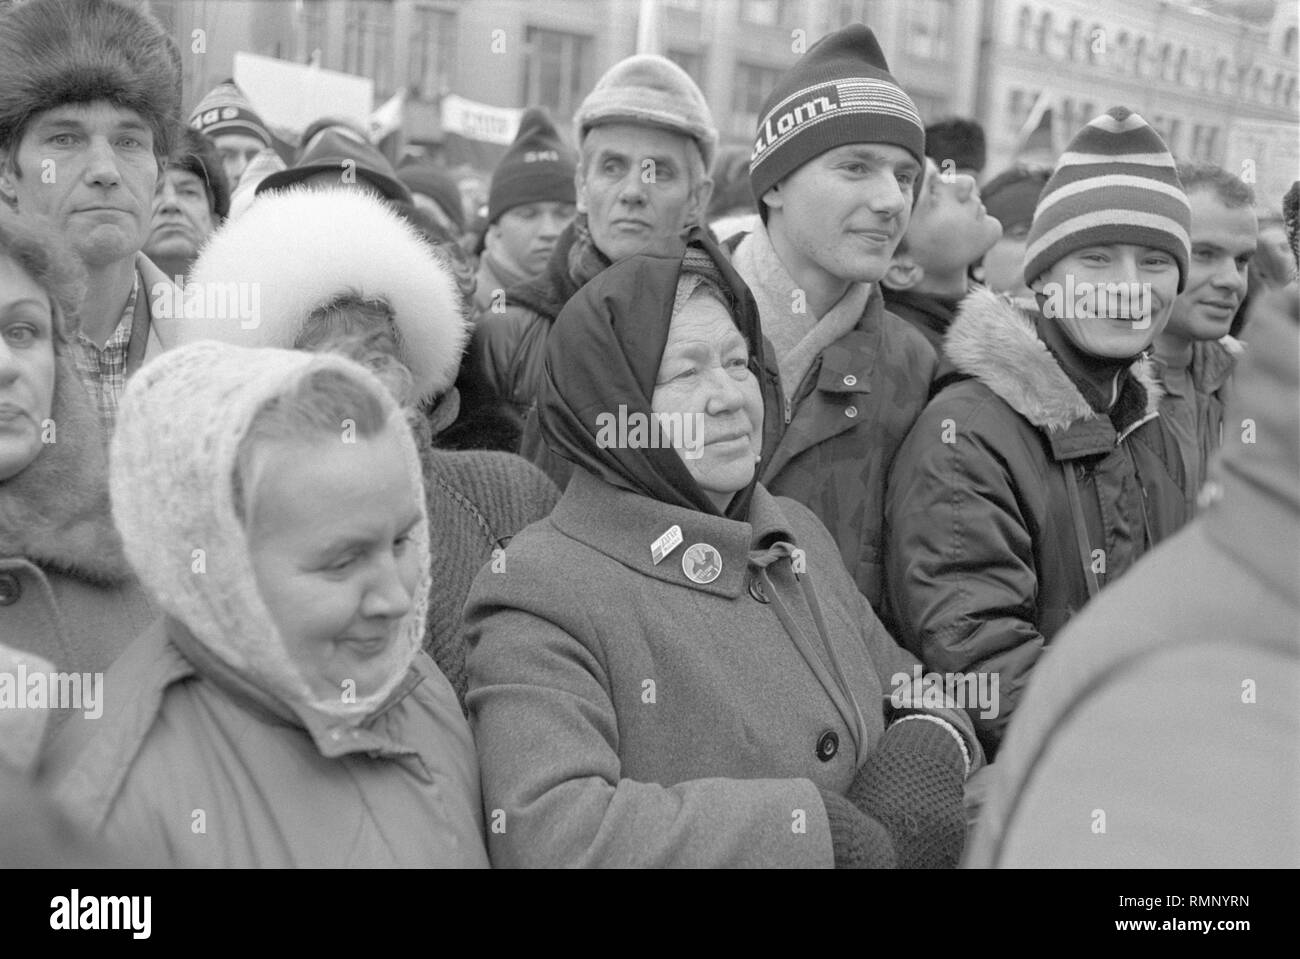 Moscow, USSR - November 7, 1990: People take part in the rally set by Moscow Association of voters, Democratic Russia movement and Democratic Platform without CPSU. - Stock Image